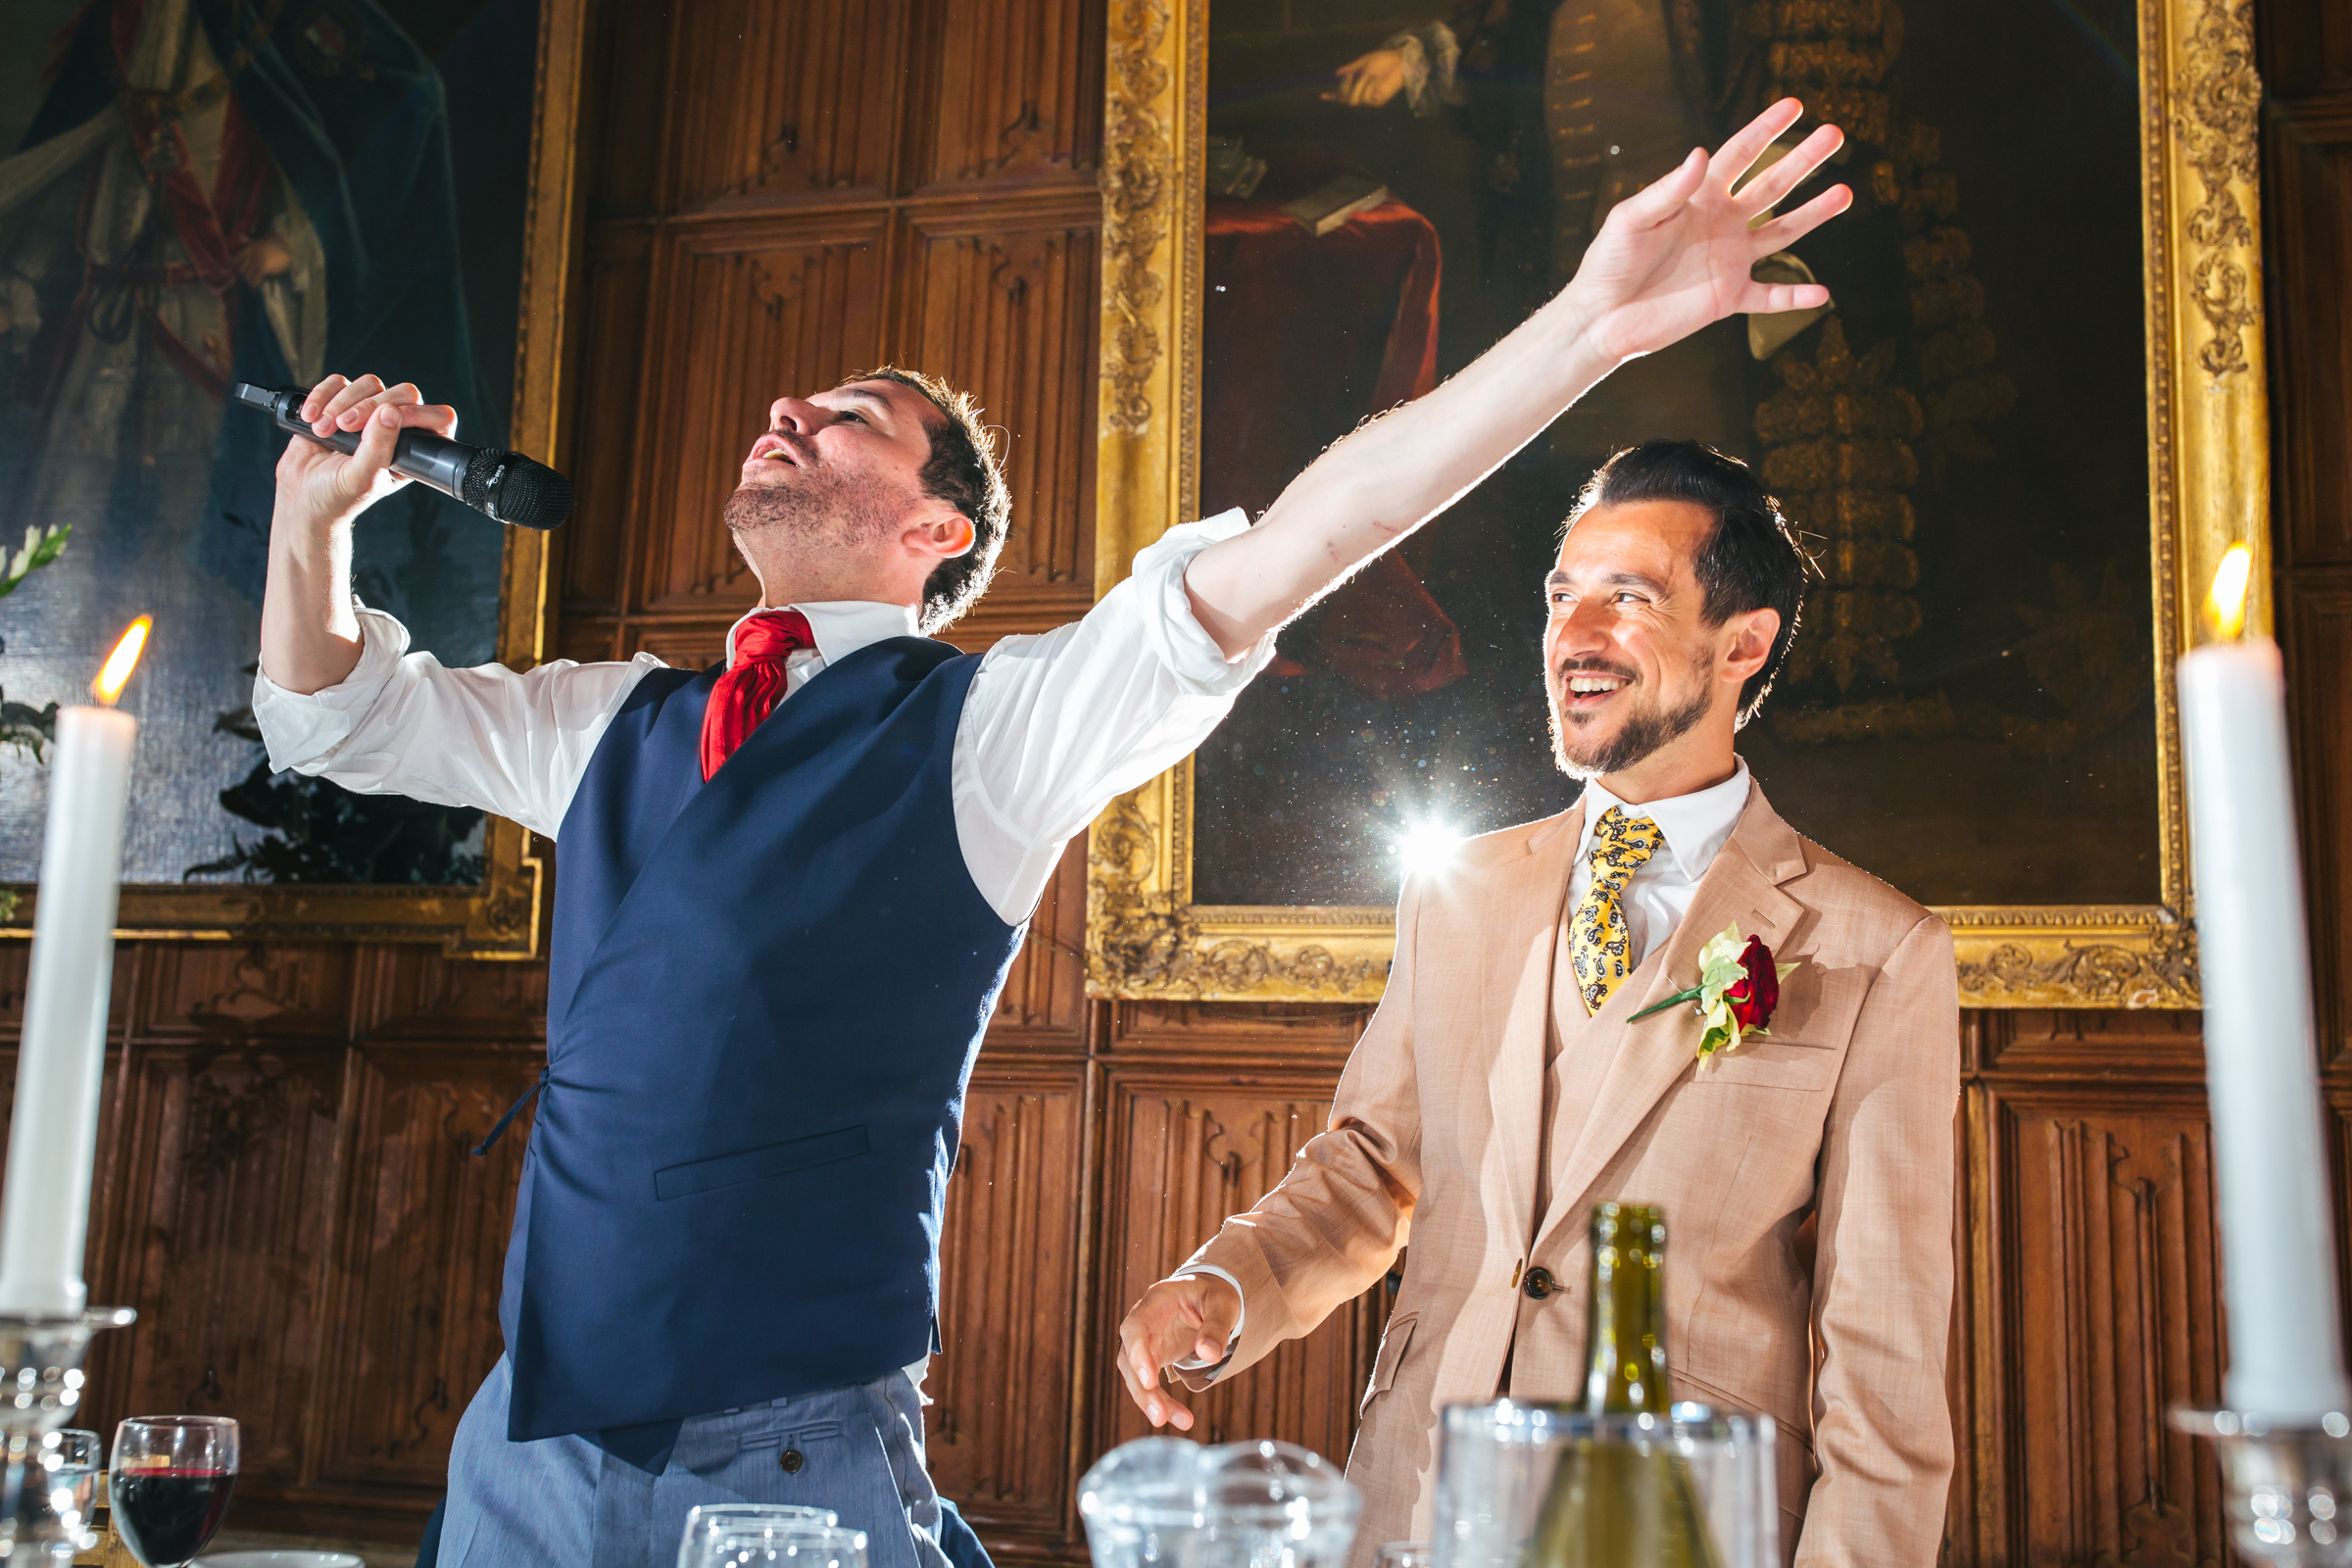 kings college cambridge university gay same sex wedding hertfordshire wedding photographer rafe abrook photography-1147.jpg